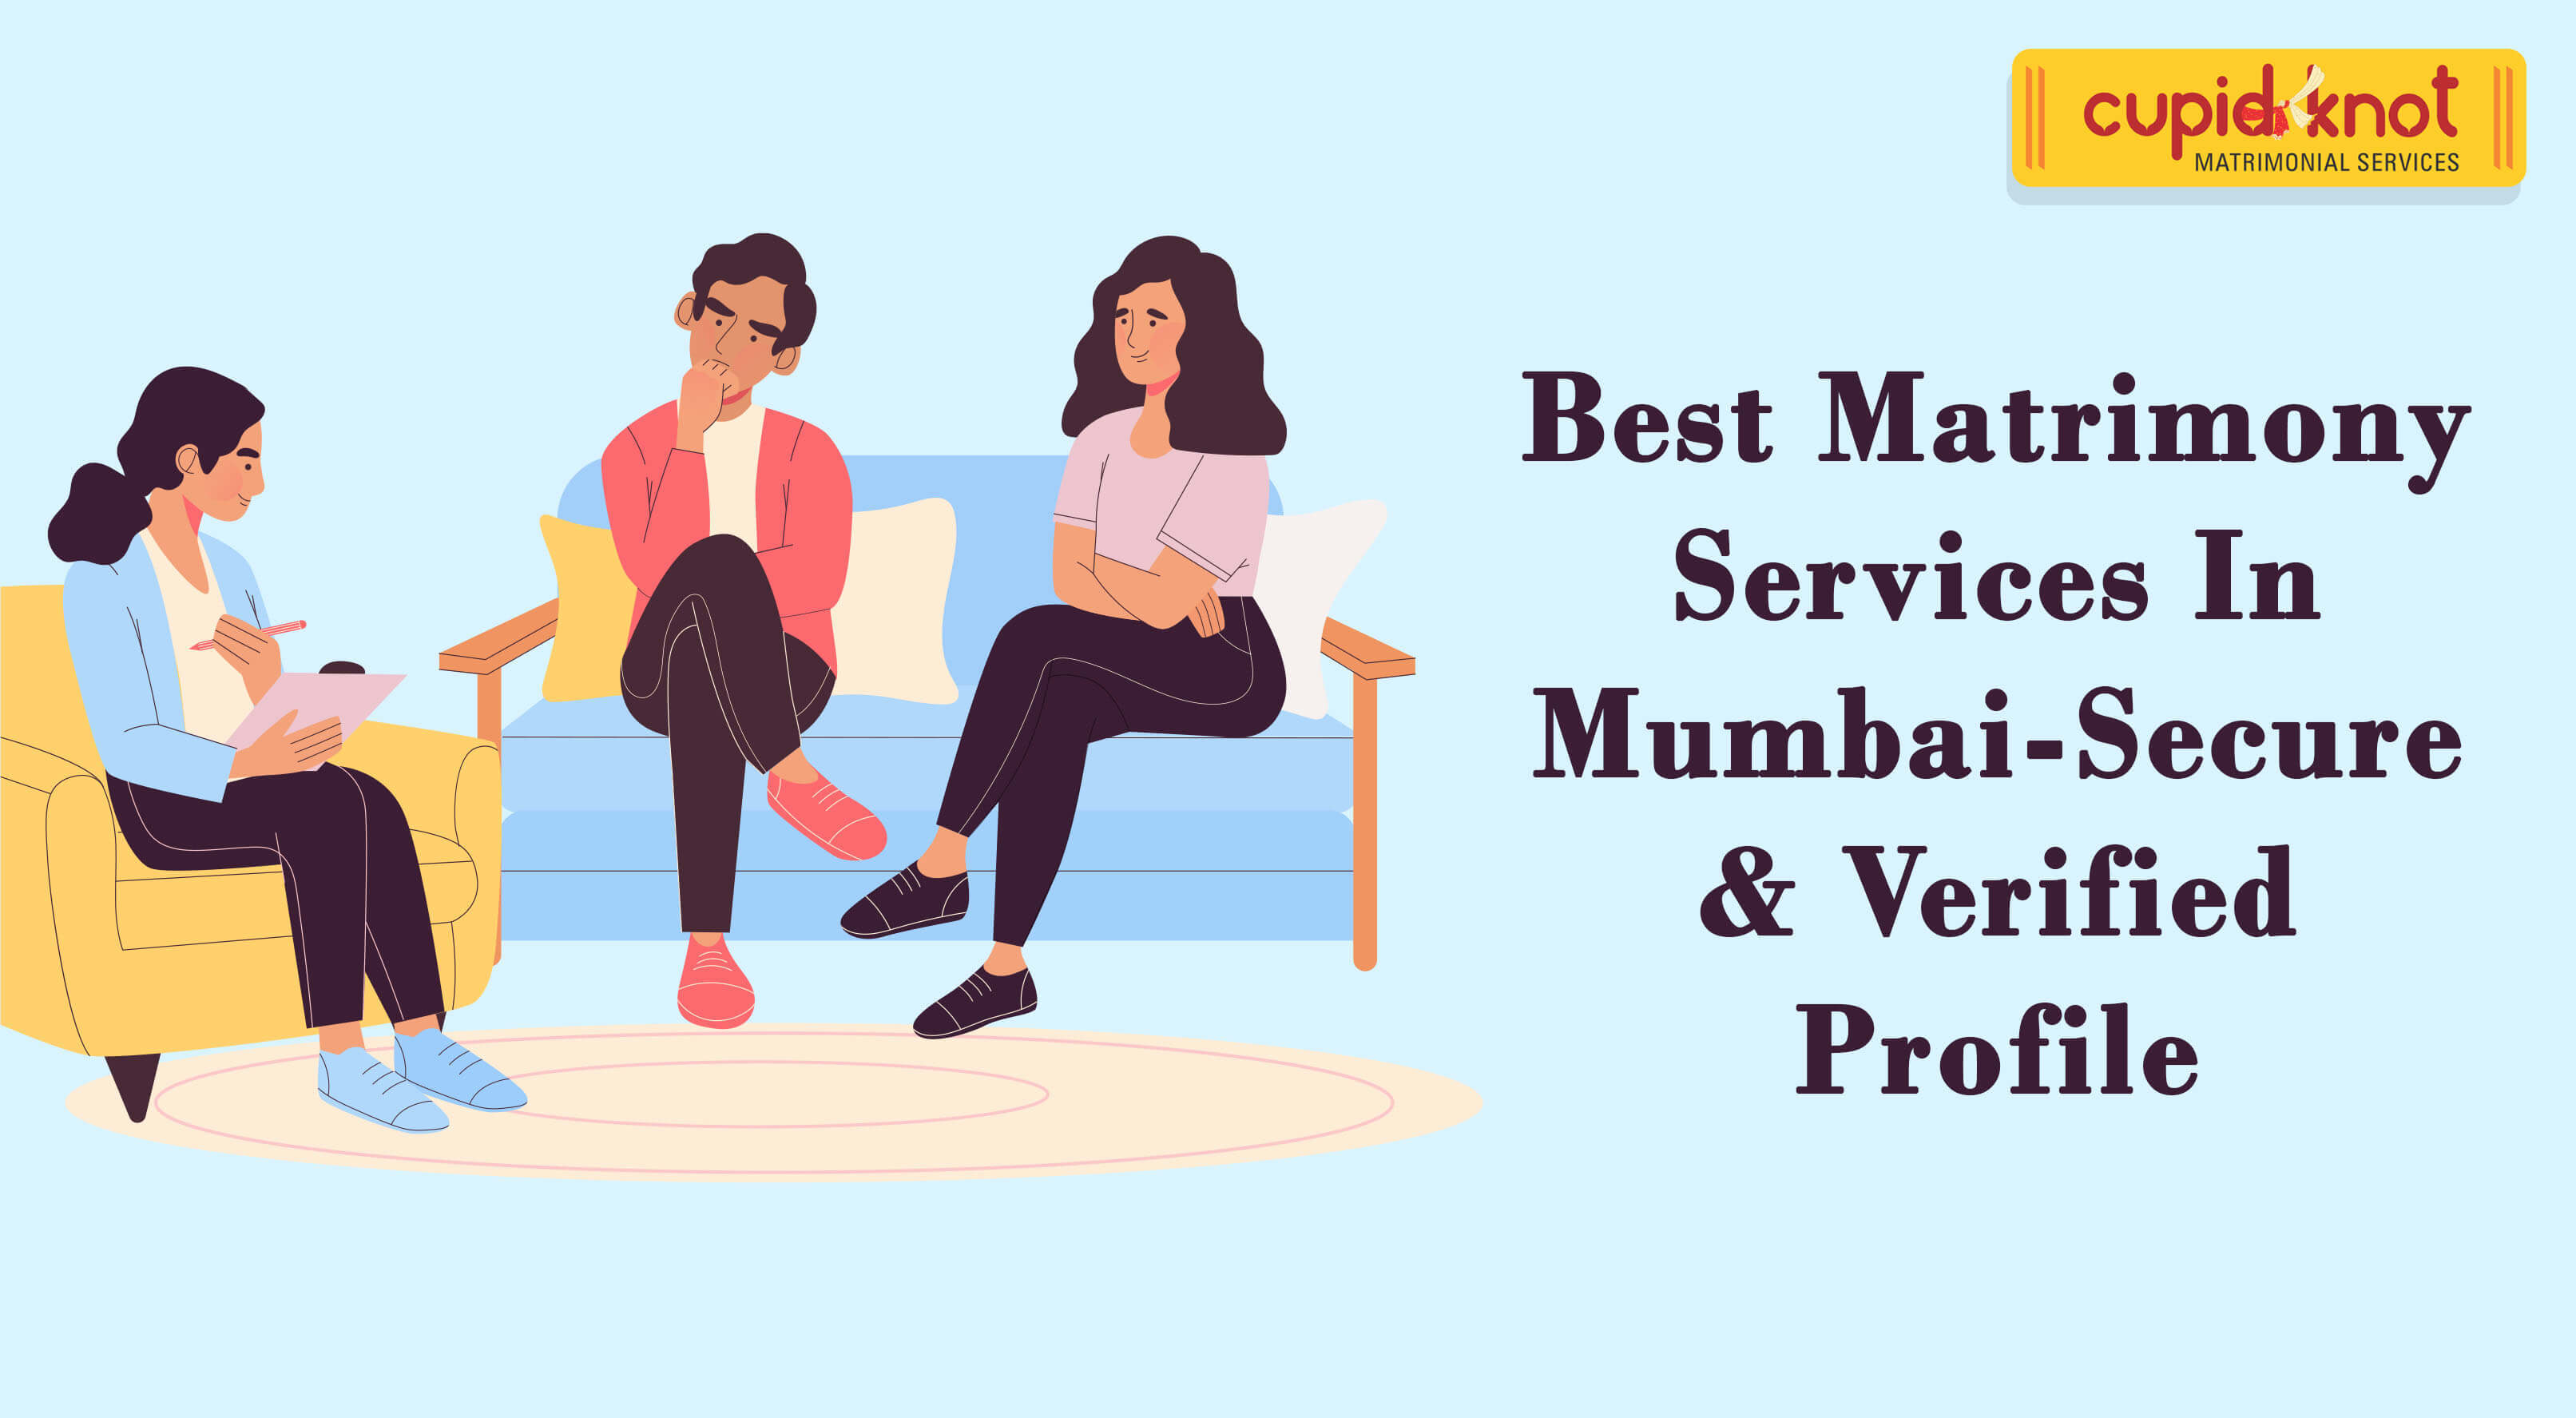 Best Matrimony Services In Mumbai-Secure & Verified Profile